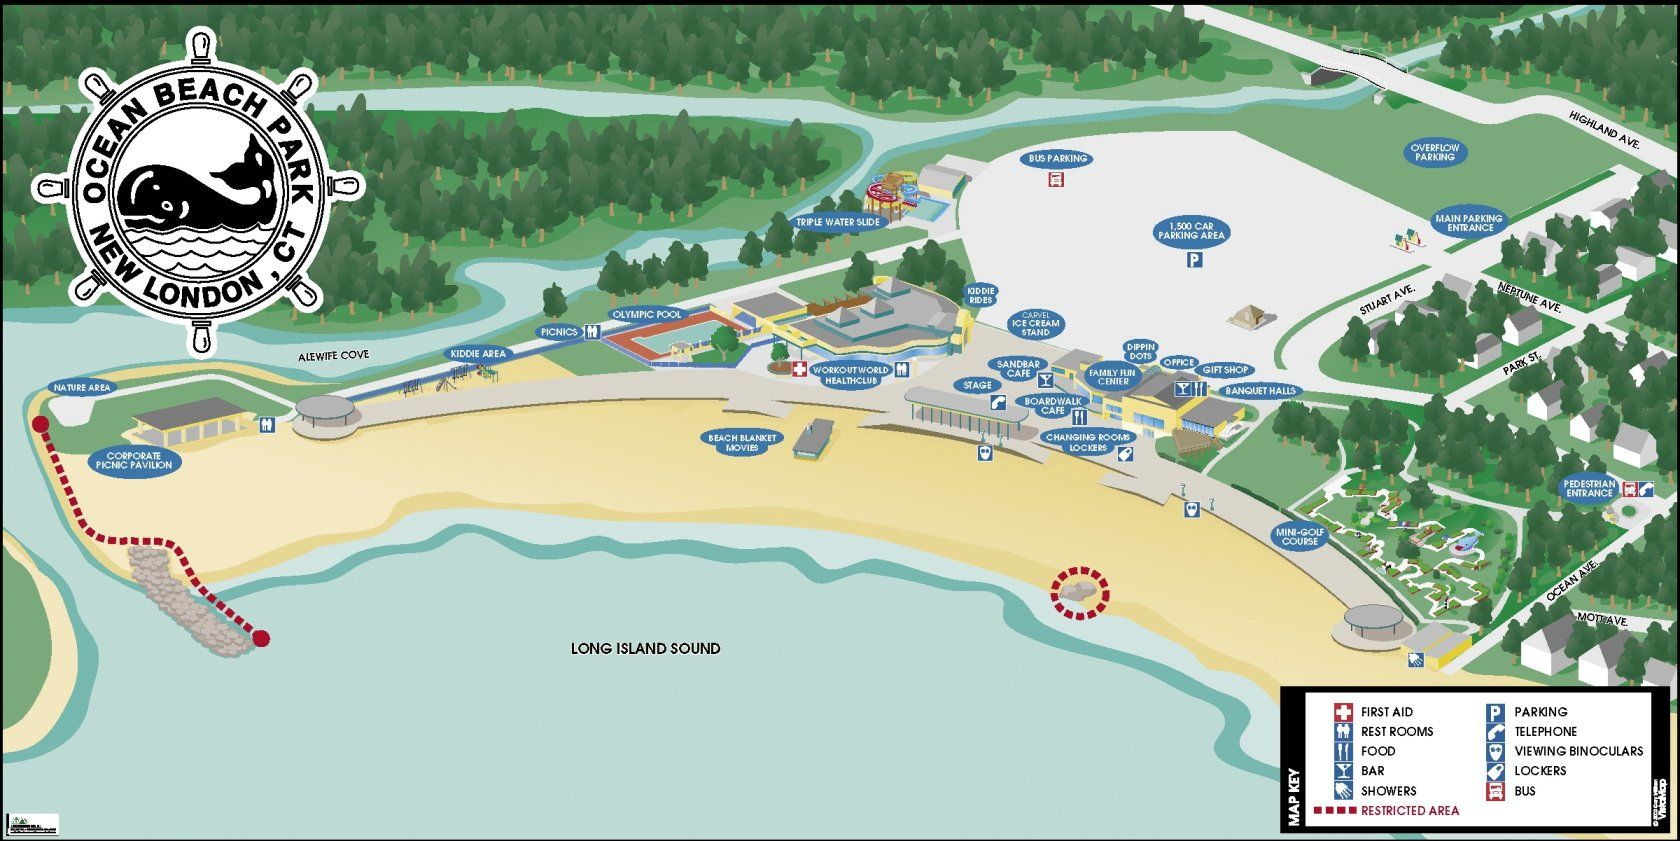 ocean beach park, new london ct map | Ocean beach, New ...